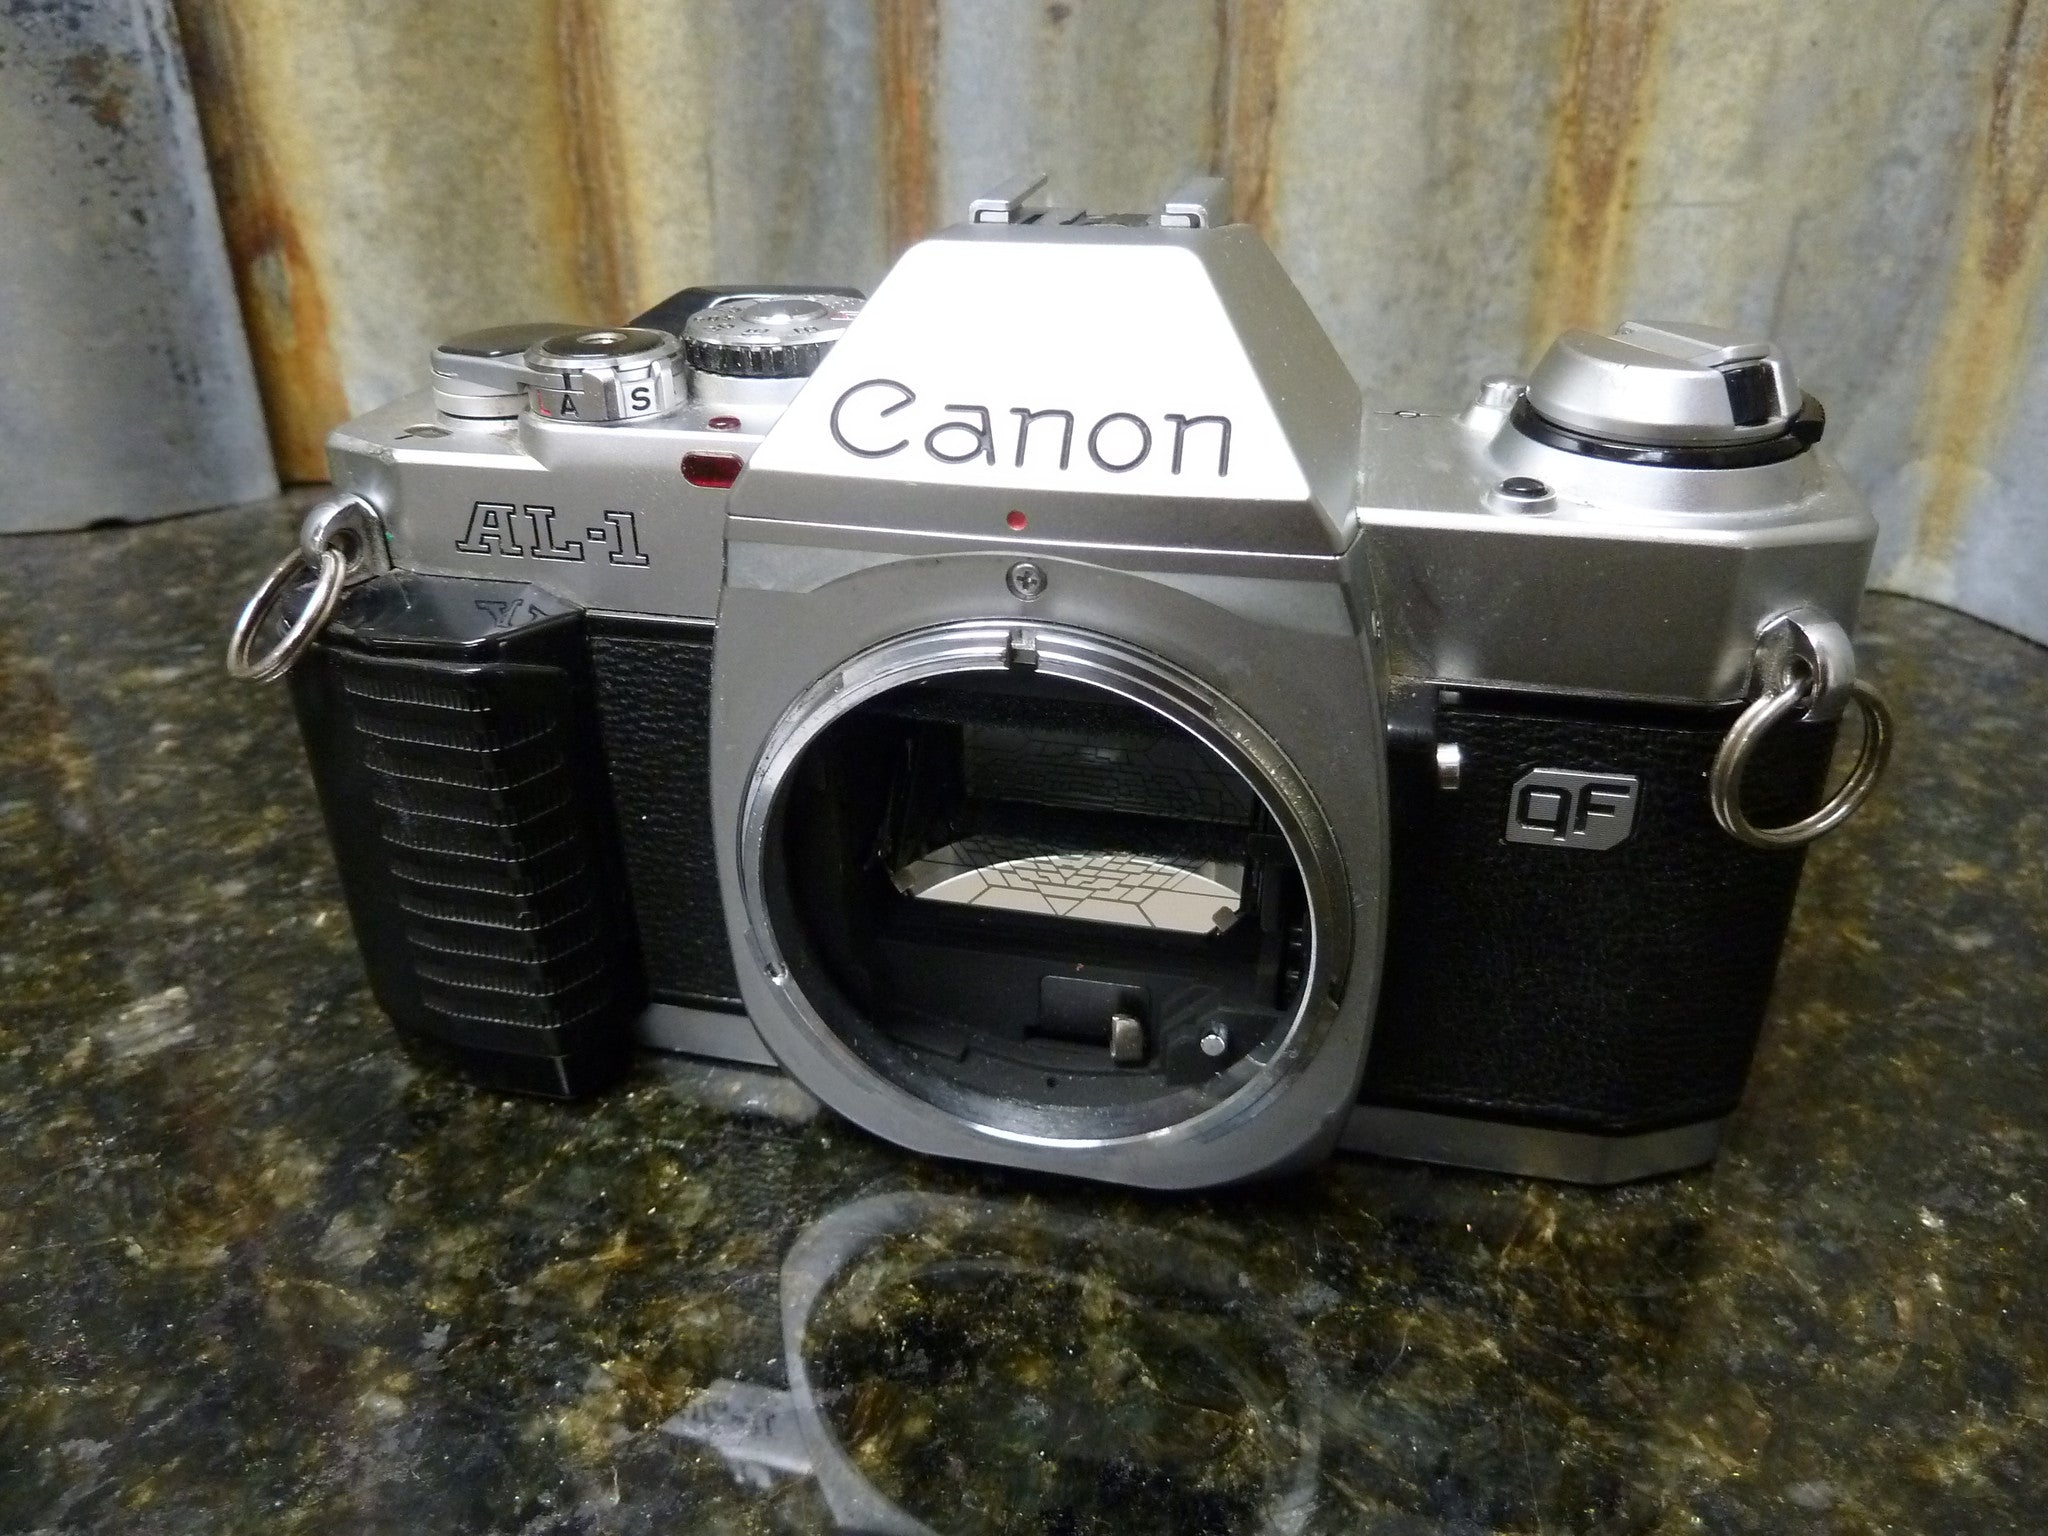 Canon AL-1 35mm SLR Film Camera Body Only Being Sold Parts Or ...